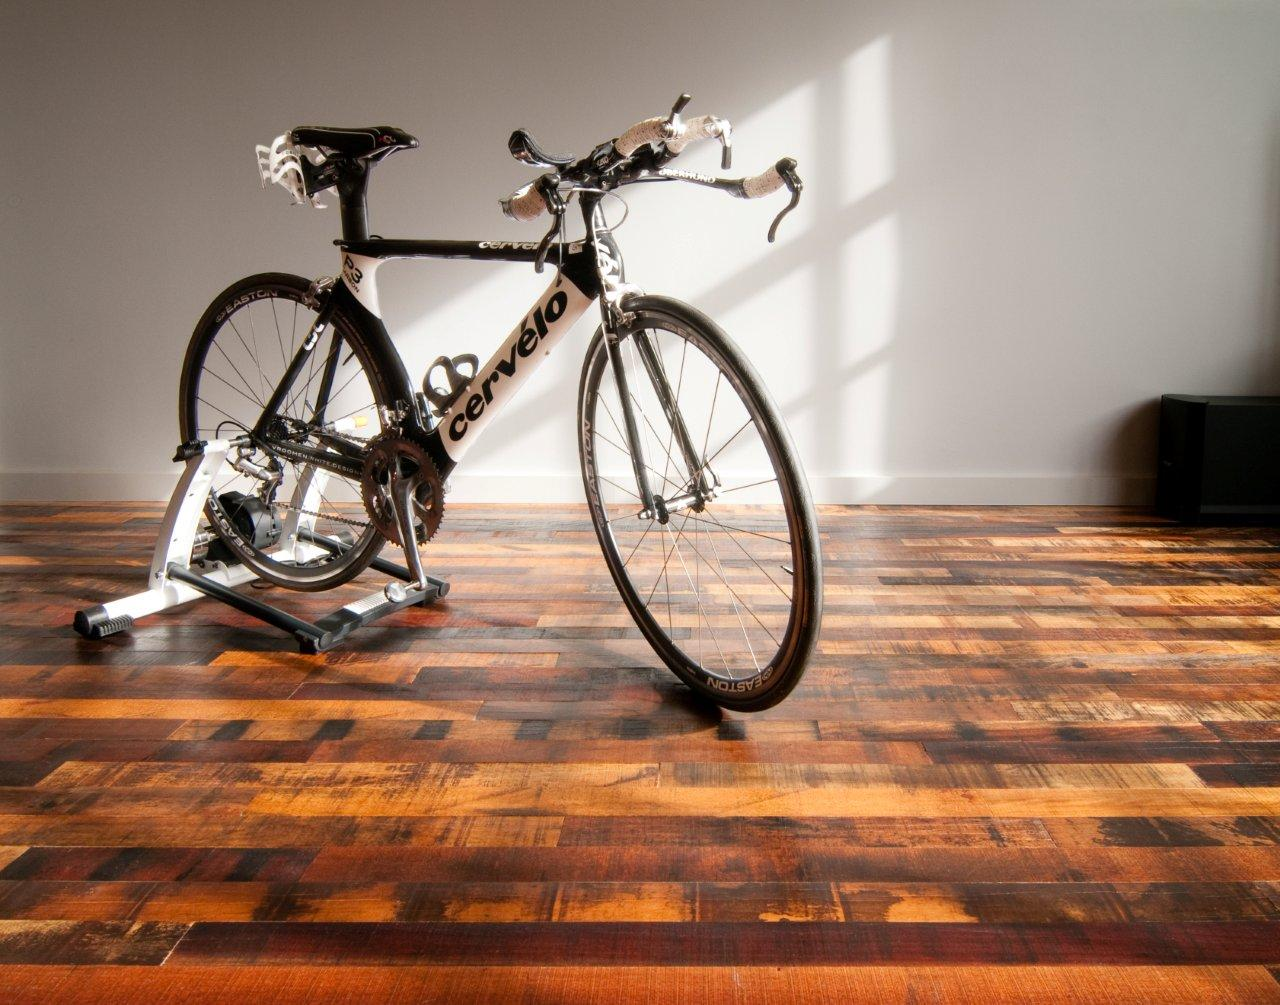 How to Remodel Using Reclaimed Wood Flooring – Know Wood Trends (Part 3 of  5) - Jetson Green - How To Remodel Using Reclaimed Wood Flooring €� Know